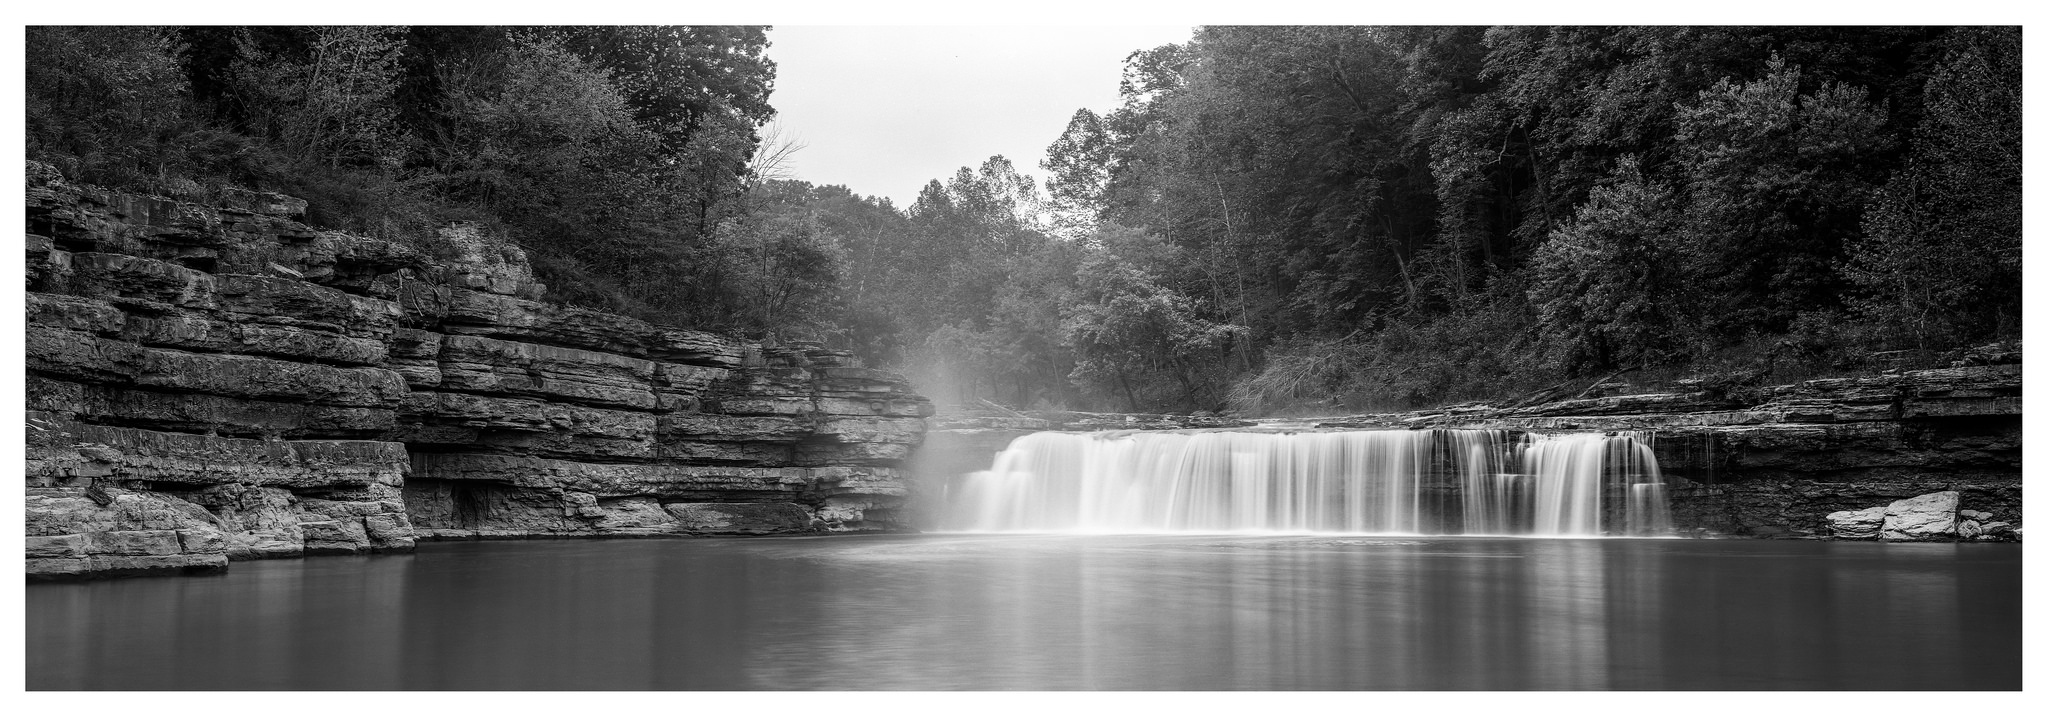 Cataract Lower Falls in the Mist - Fuji GX617 with ACROS 100 film, long exposure